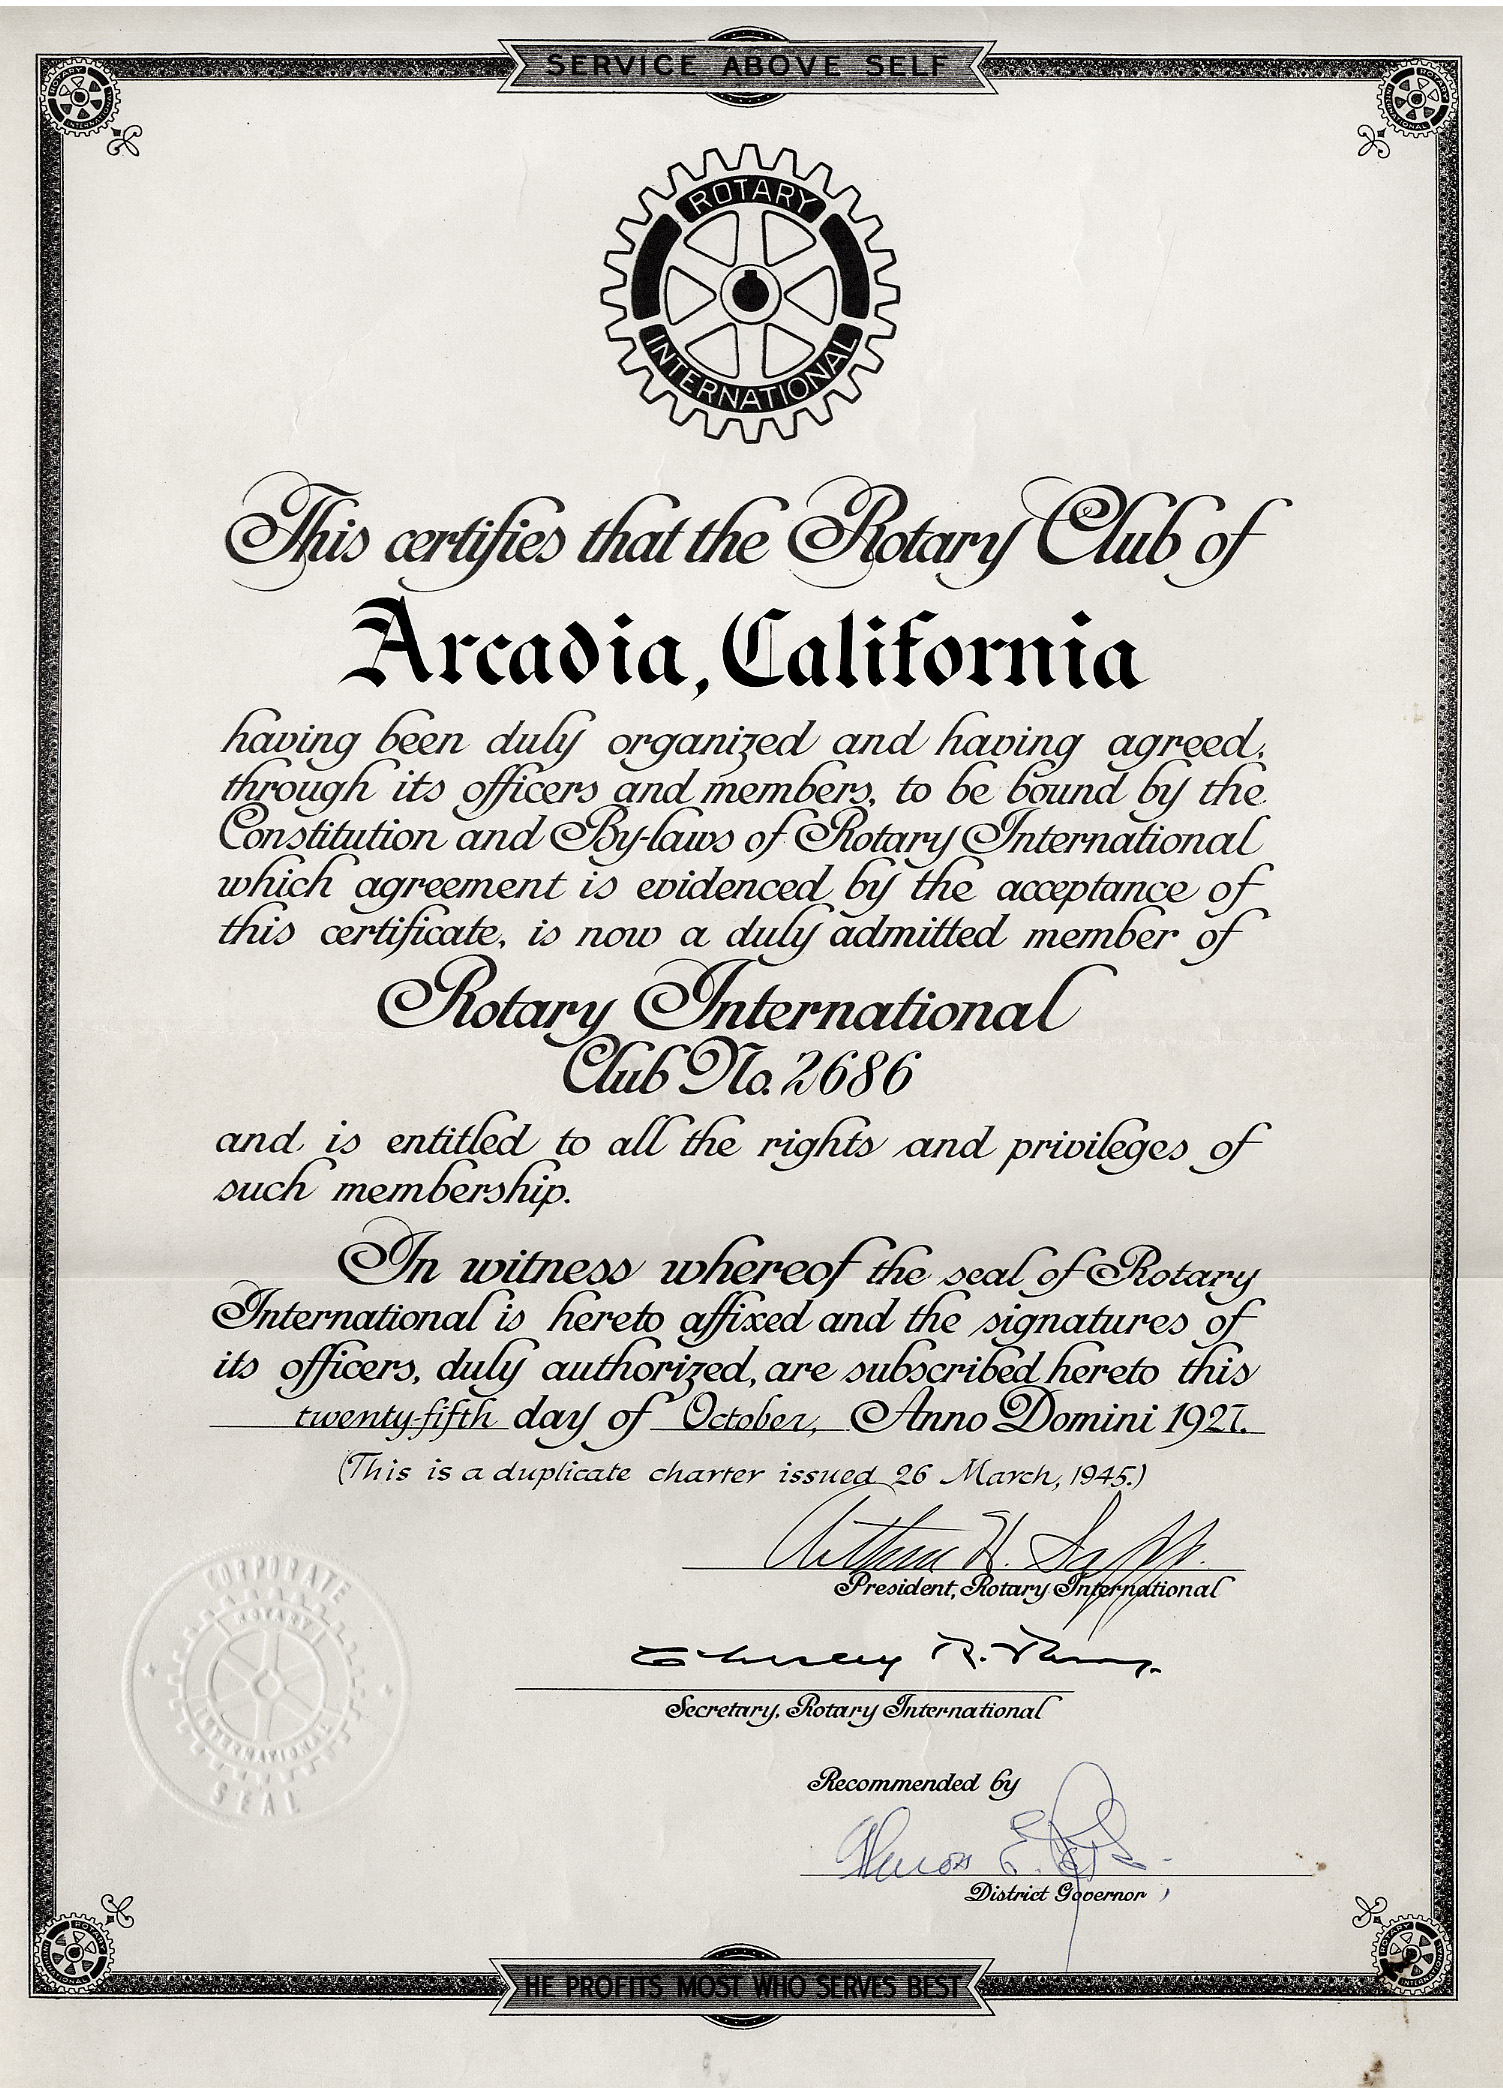 Charter of the Rotary Club of Arcadia